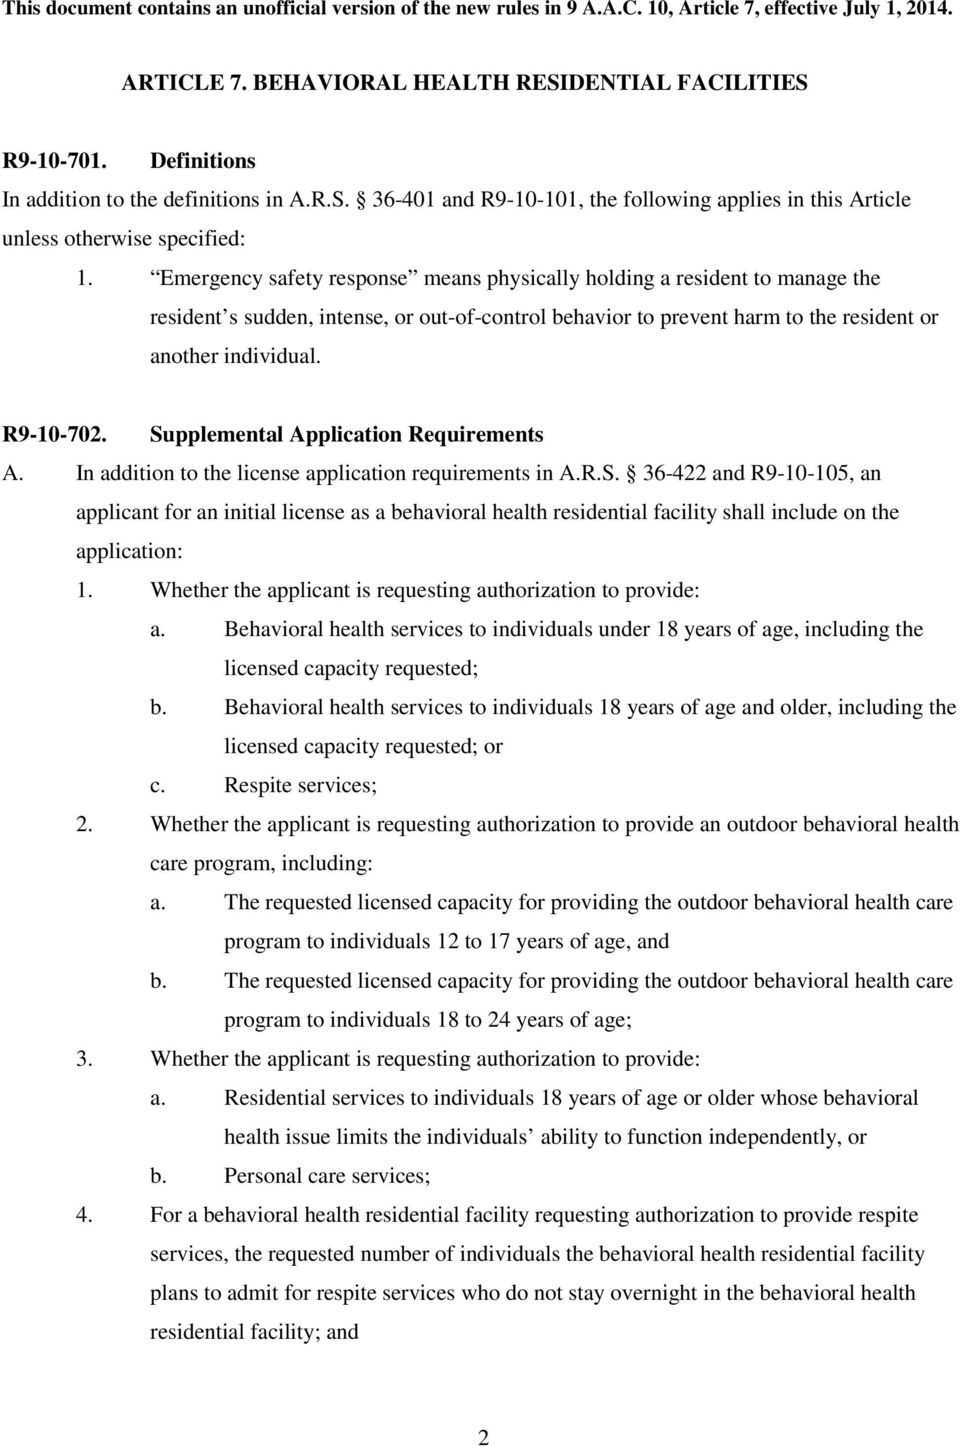 Supplemental Application Requirements A. In addition to the license application requirements in A.R.S. 36-422 and R9-10-105, an applicant for an initial license as a behavioral health residential facility shall include on the application: 1.